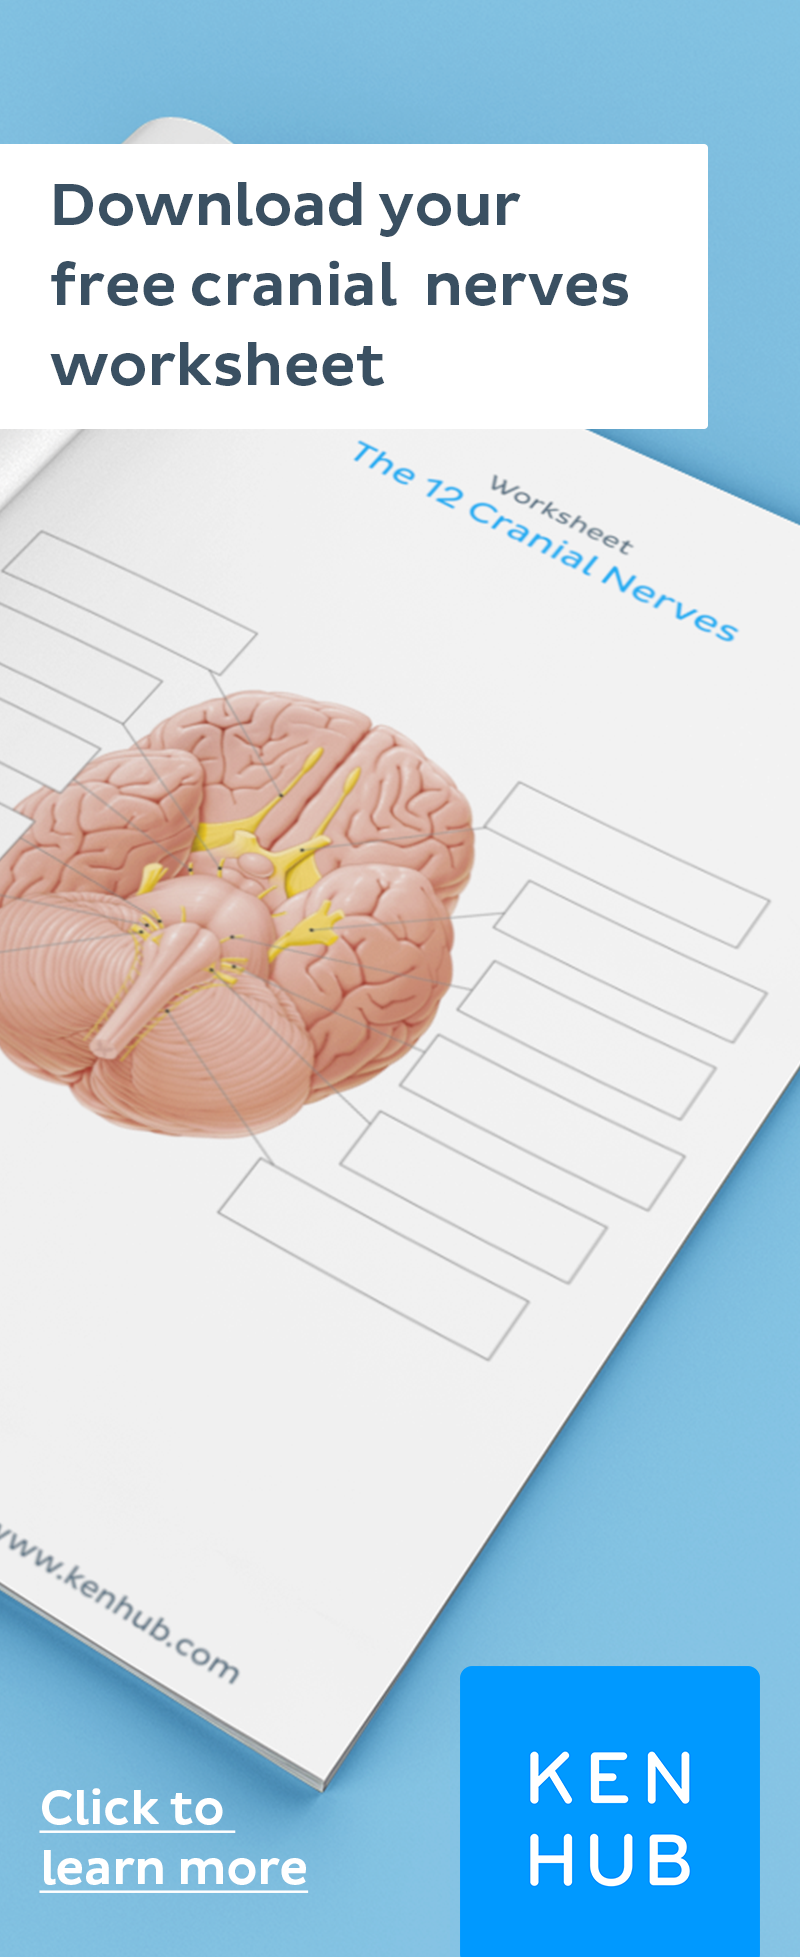 Cranial nerves quizzes and labeling exercises | Cranial ...